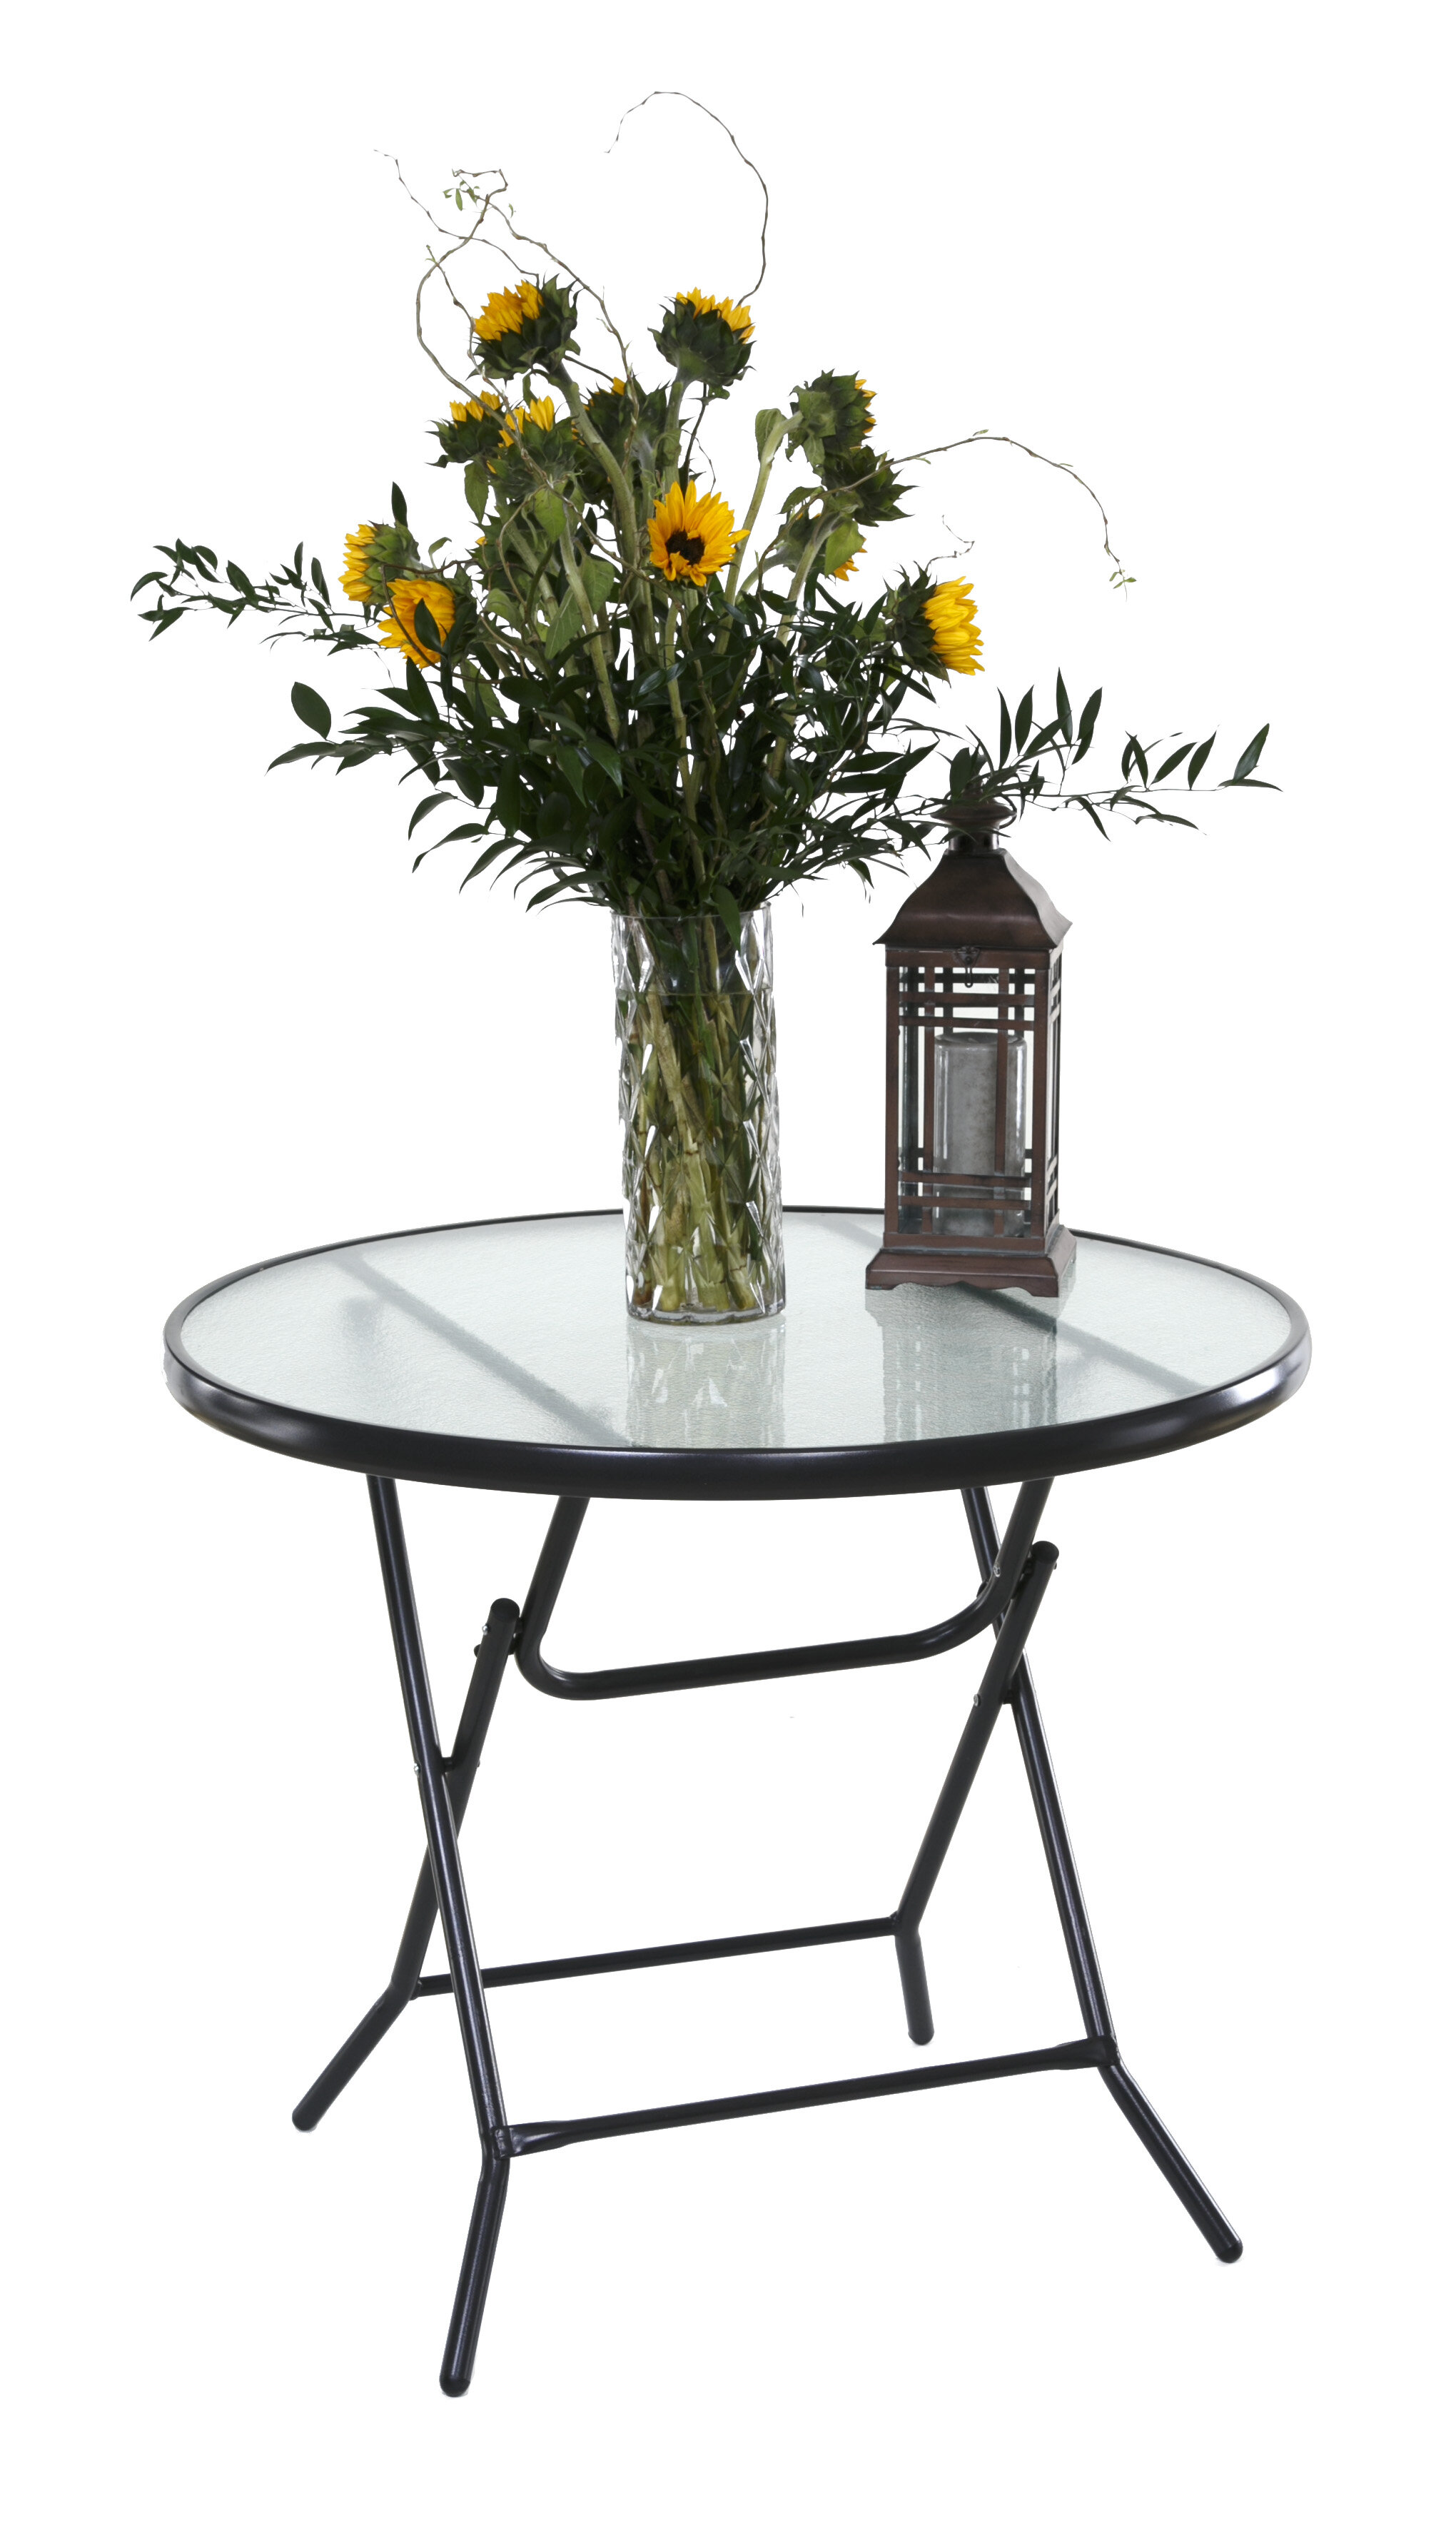 gateleg chairs and ideas decor hammacher the stowable folding of schlemmer table patio